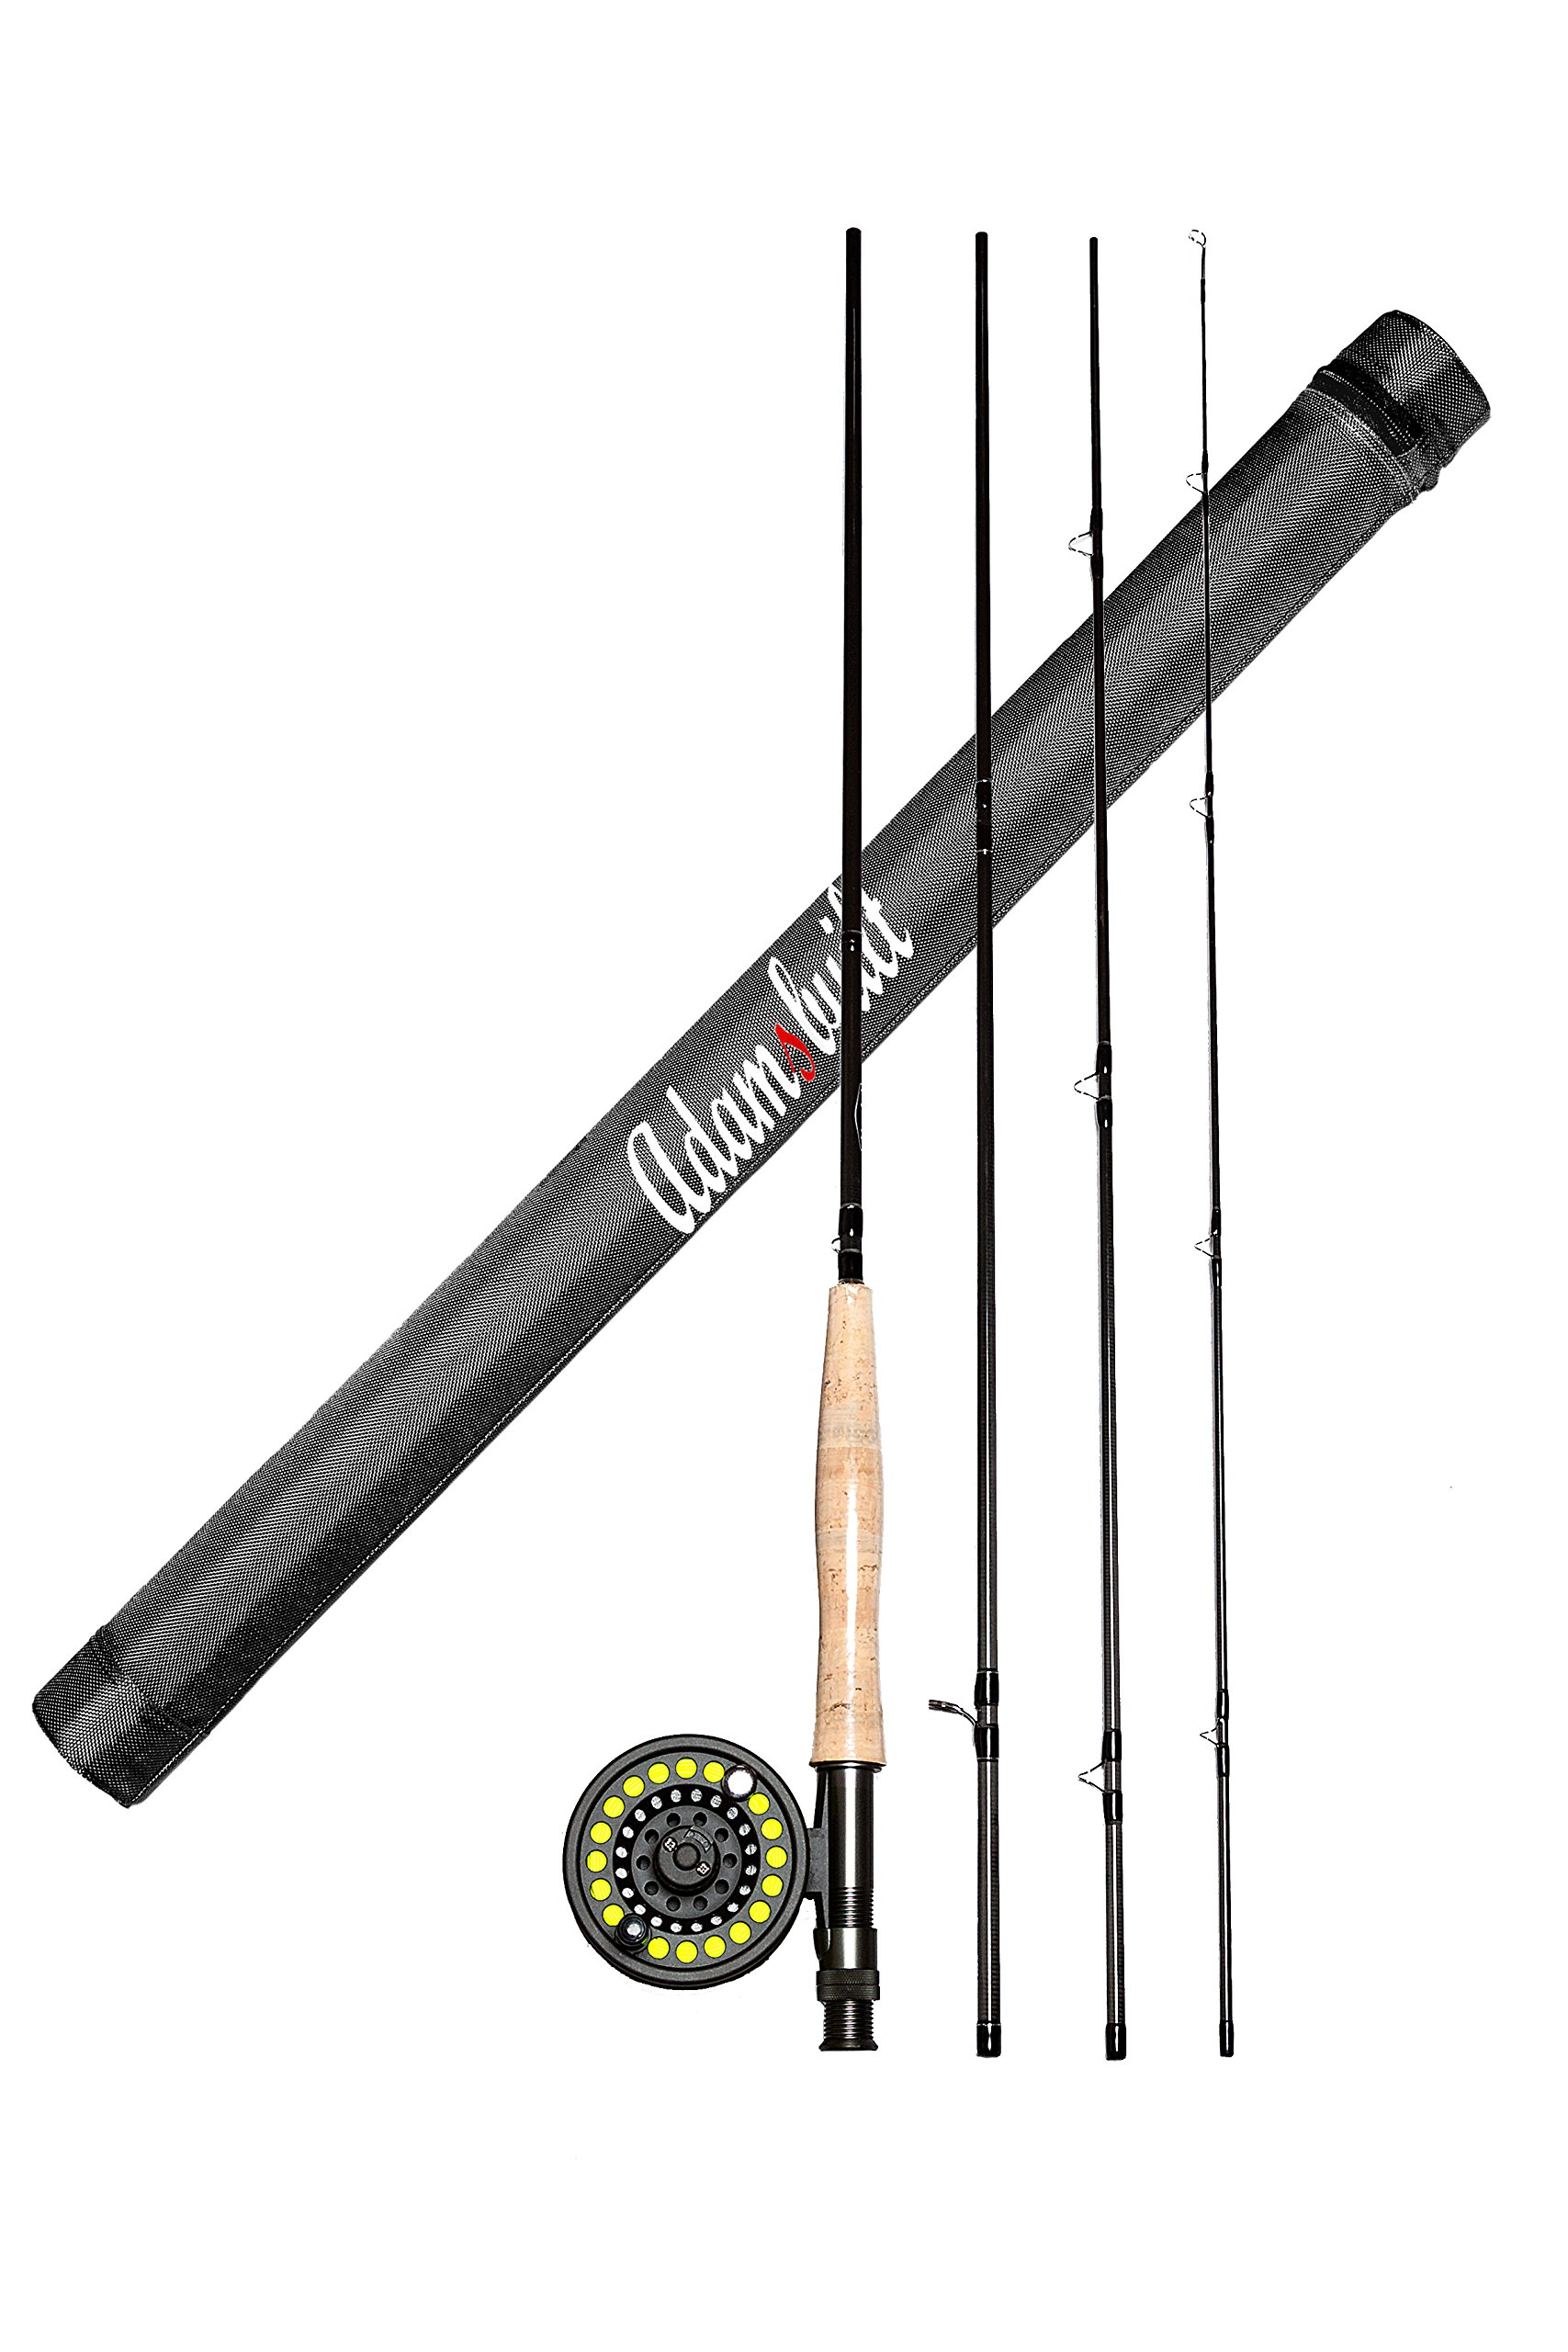 AdamsbuiltFLY COMBO LEARN TO FLY FISH 9FT 5WT BOXED,9FT 5WT,DARK GREY